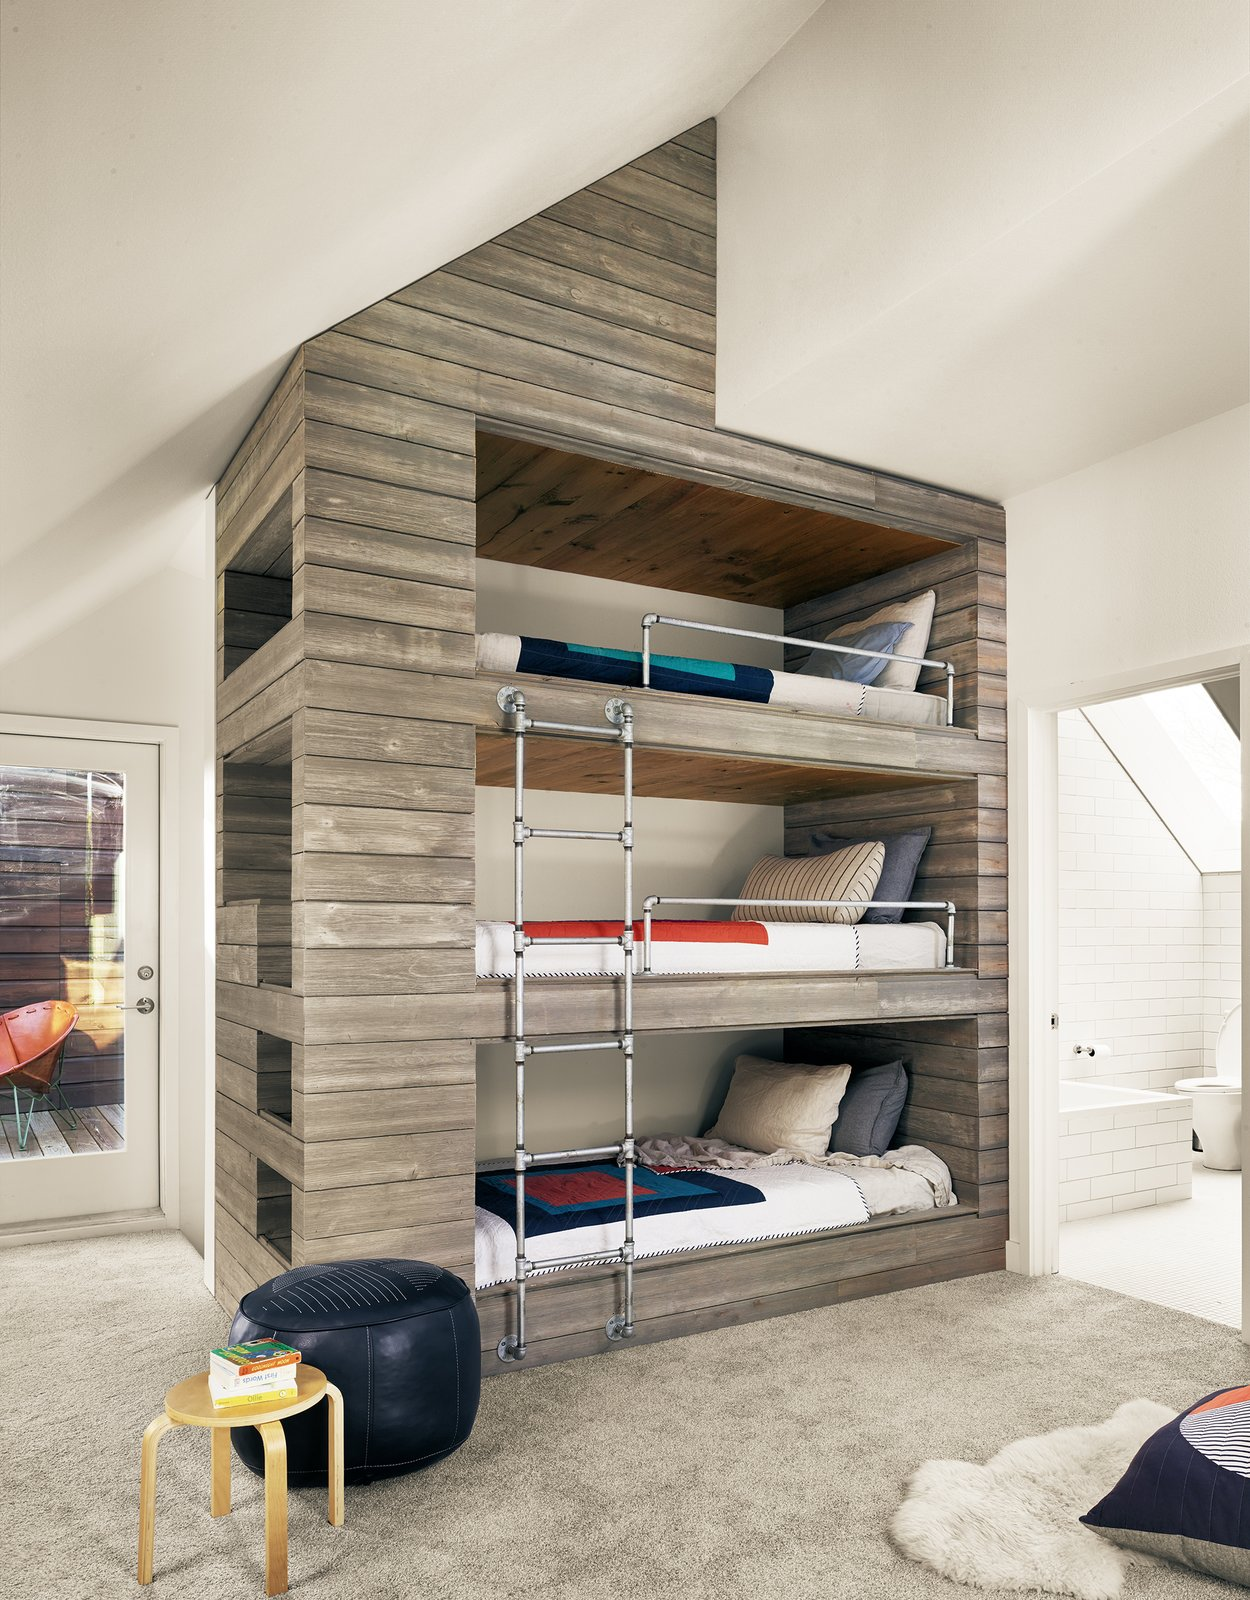 Kids Room, Bunks, Playroom Room Type, Family Room Room Type, Chair, Shelves, Storage, Bedroom Room Type, Bed, Rug Floor, Carpet Floor, Neutral Gender, Teen Age, Pre-Teen Age, and Toddler Age View of triple bunk bed and outdoor roof deck by Low Design Office  Guadalupe River House